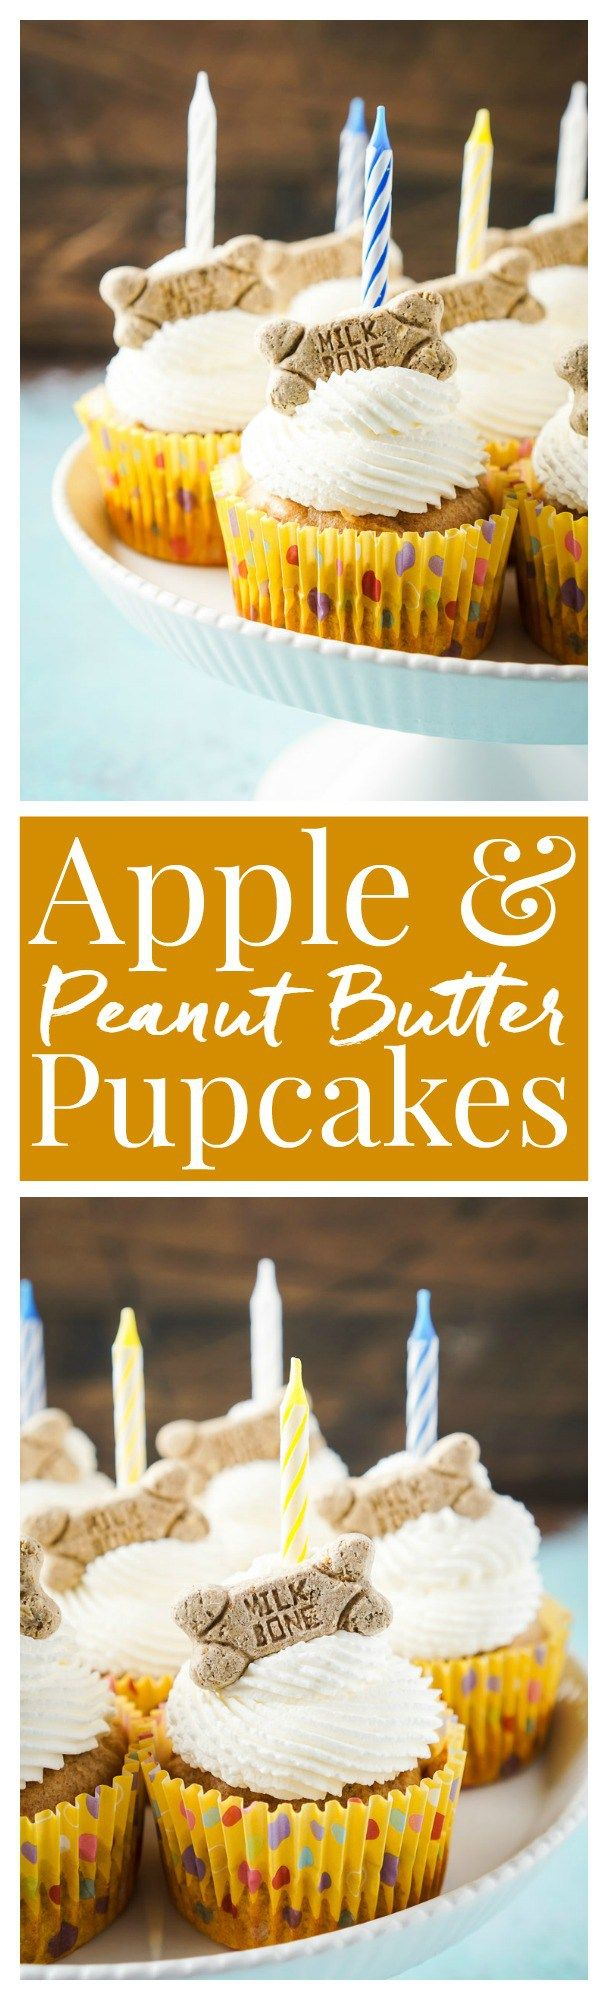 These Apple & Peanut Butter Pupcakes are a great homemade treat for your dog's birthday! Más